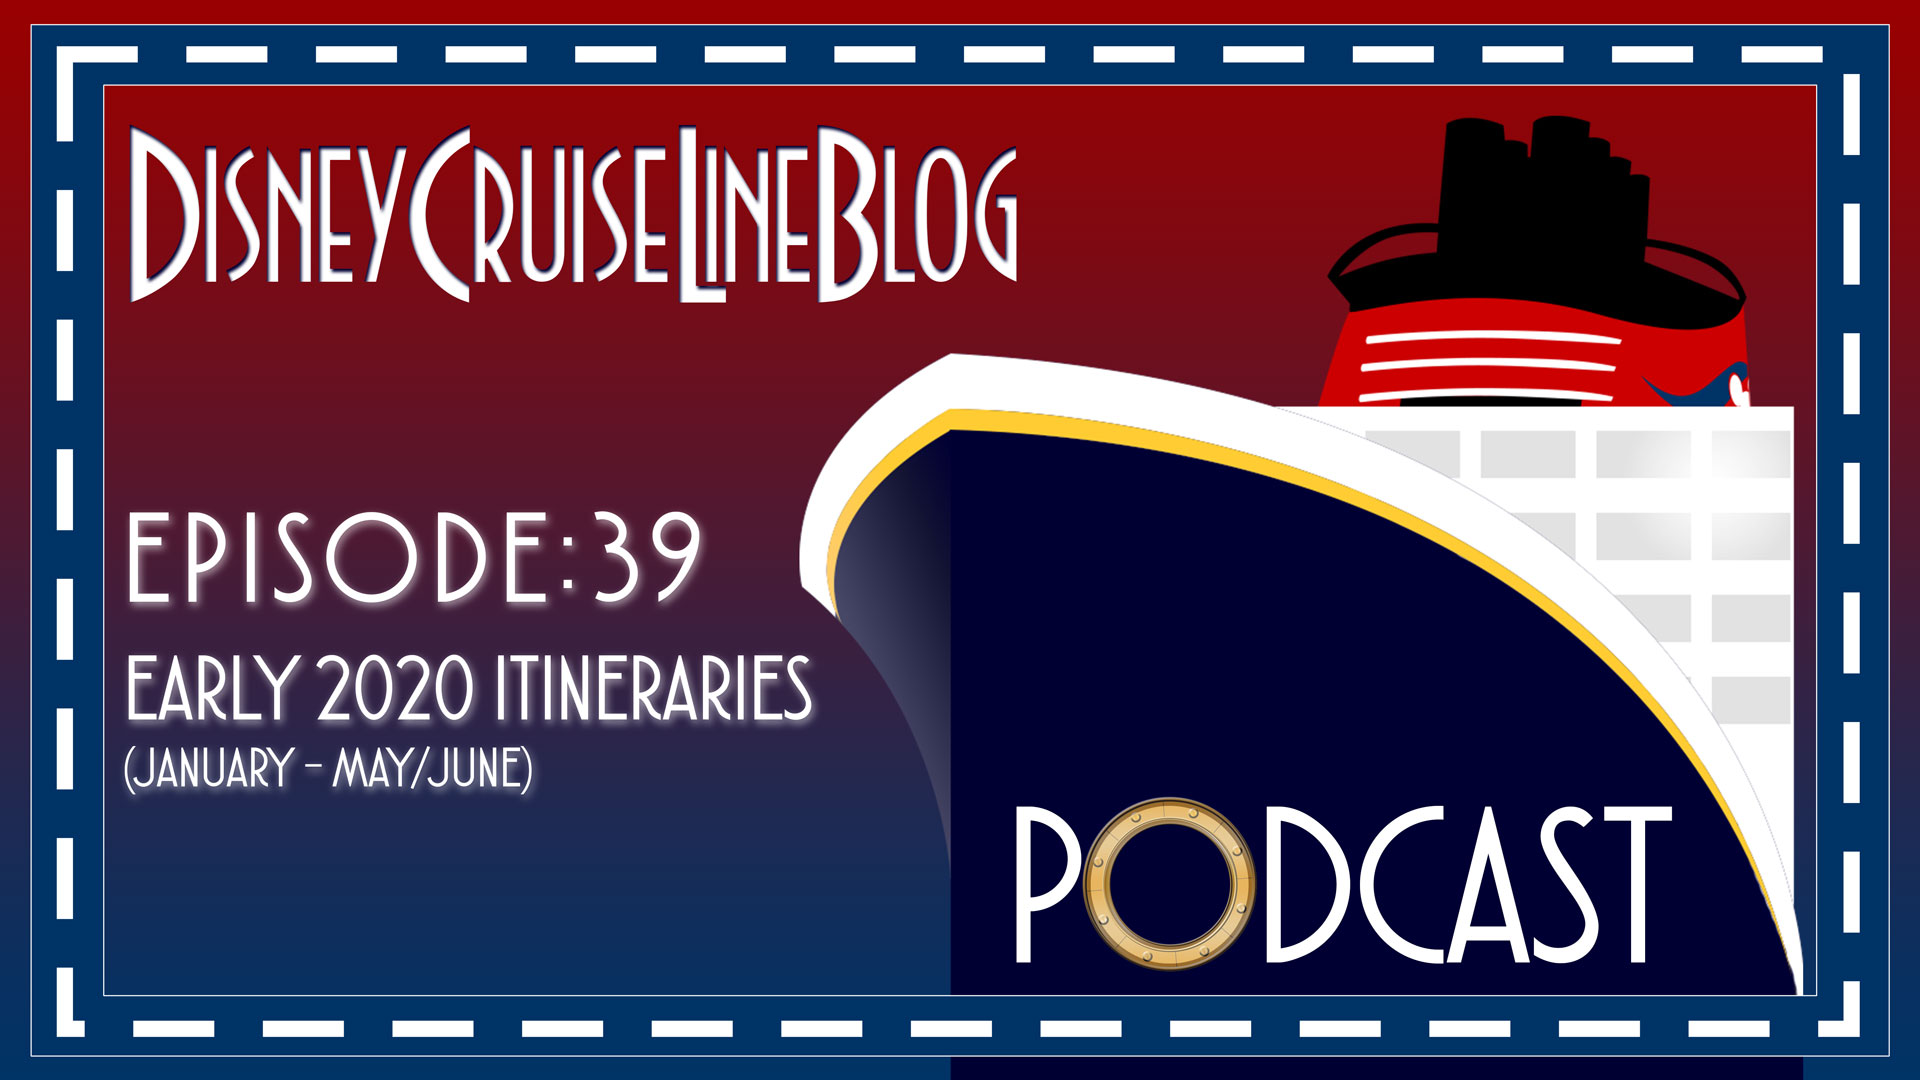 DCL Blog Podcast Episode 39 Early 2020 Itineraries